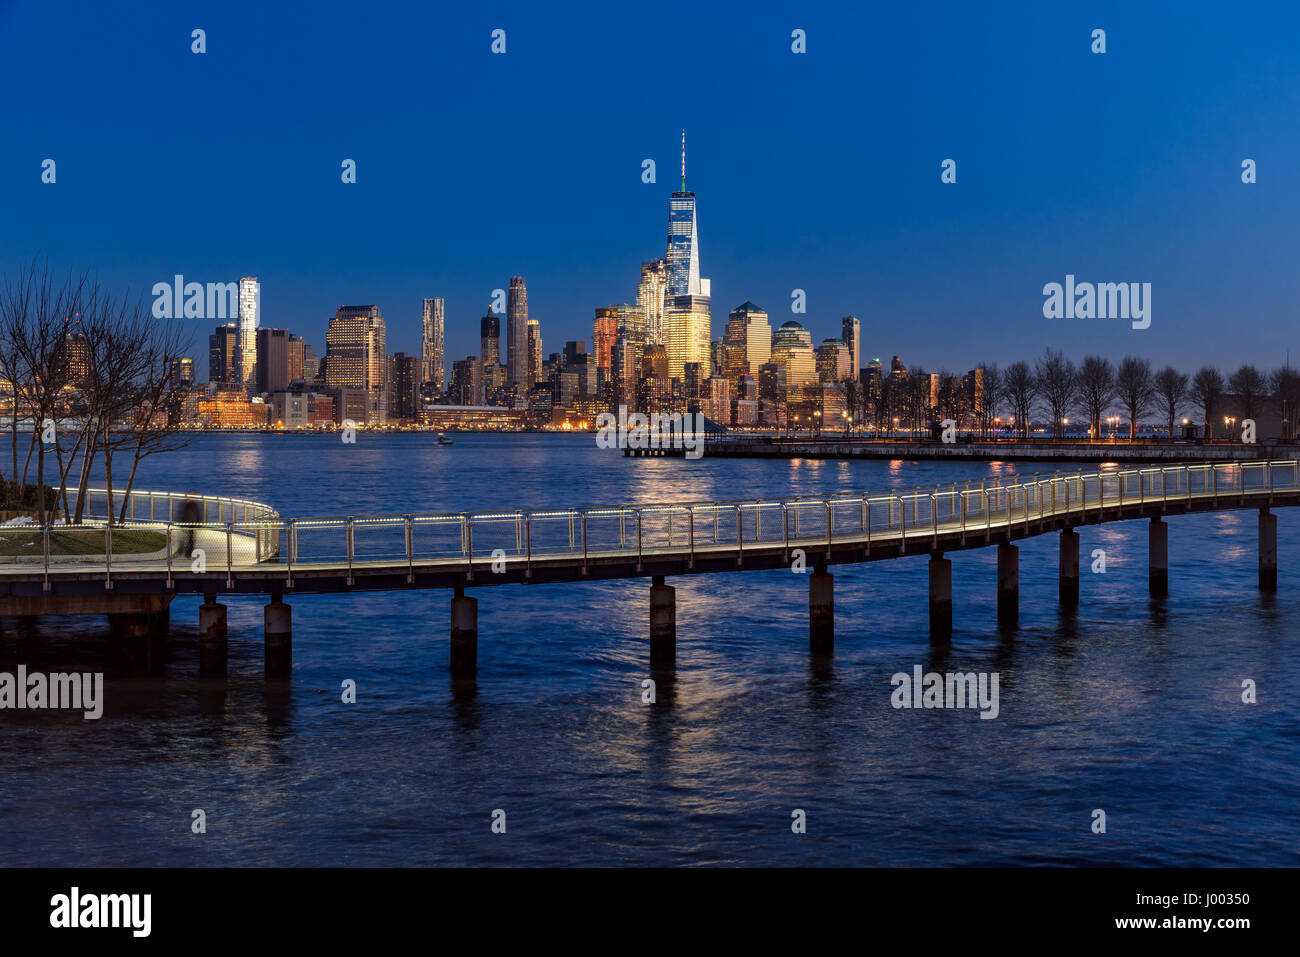 New York City Financial District skyscrapers at sunset and Hudson River from Hoboken promenade. Lower Manhattan - Stock Image